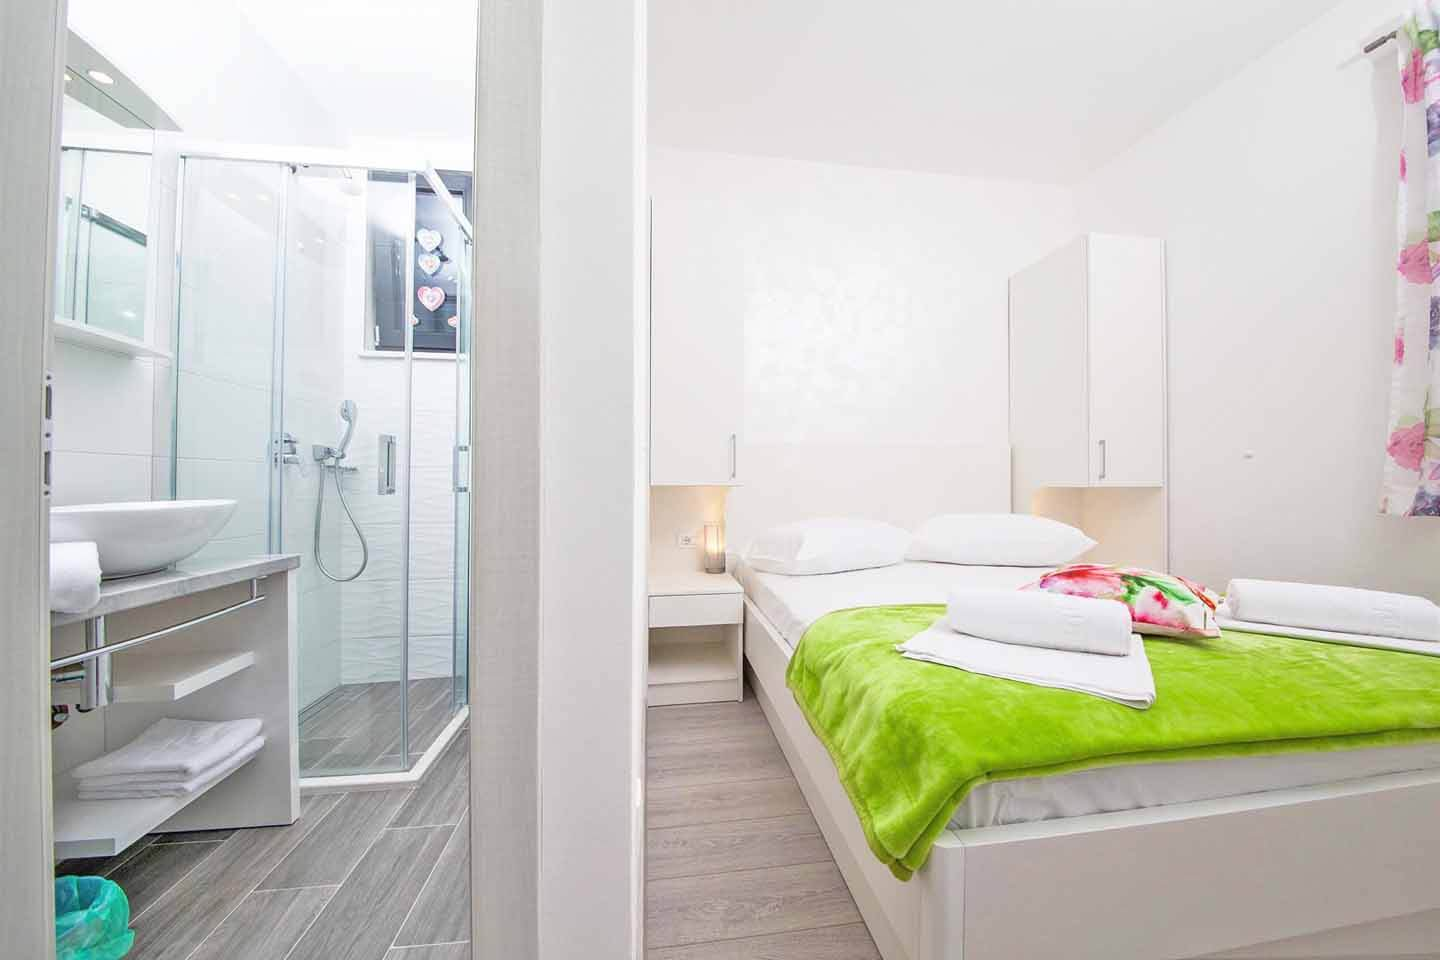 Double bedroom 2 and ensuite